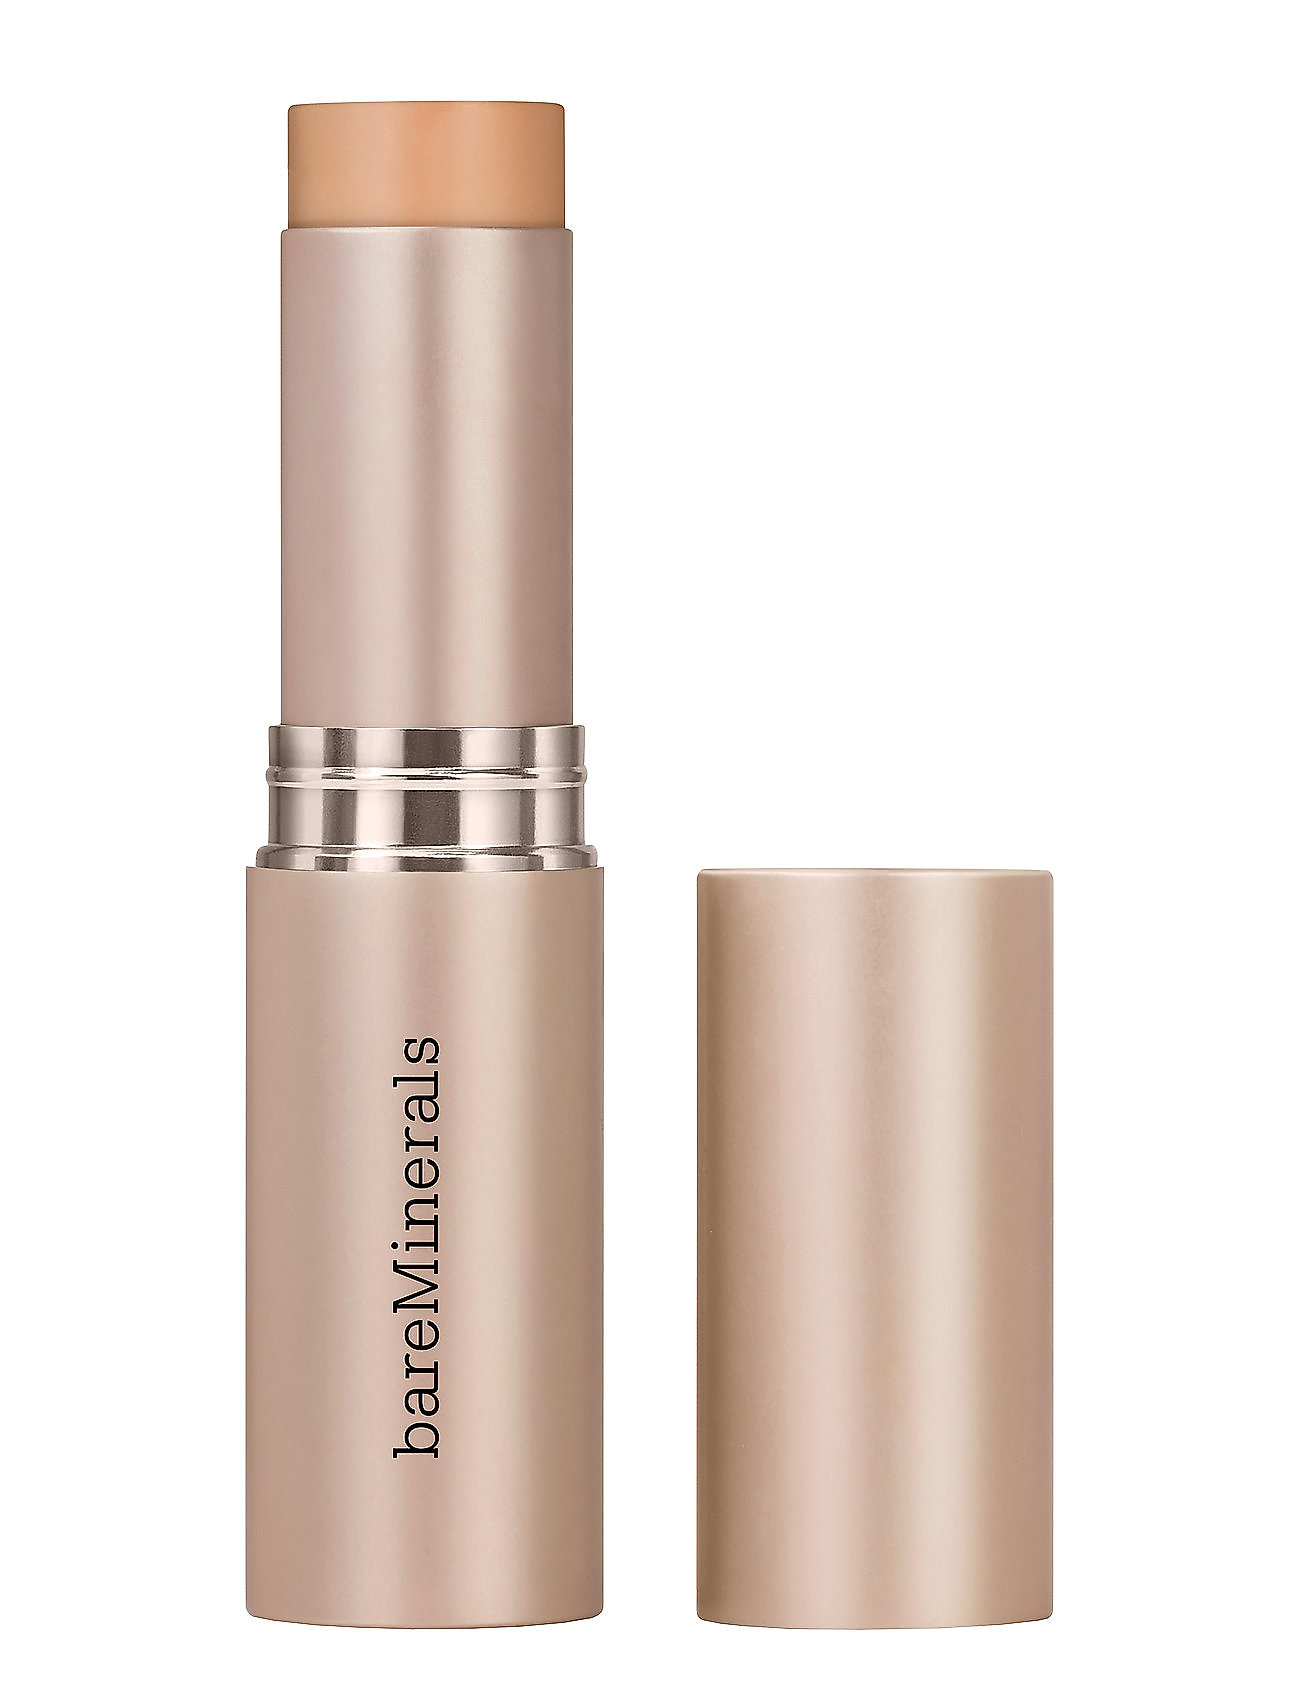 Image of Complexion Rescue Hydrating Foundation Stick Spf 25 Foundation Makeup BareMinerals (3250586899)